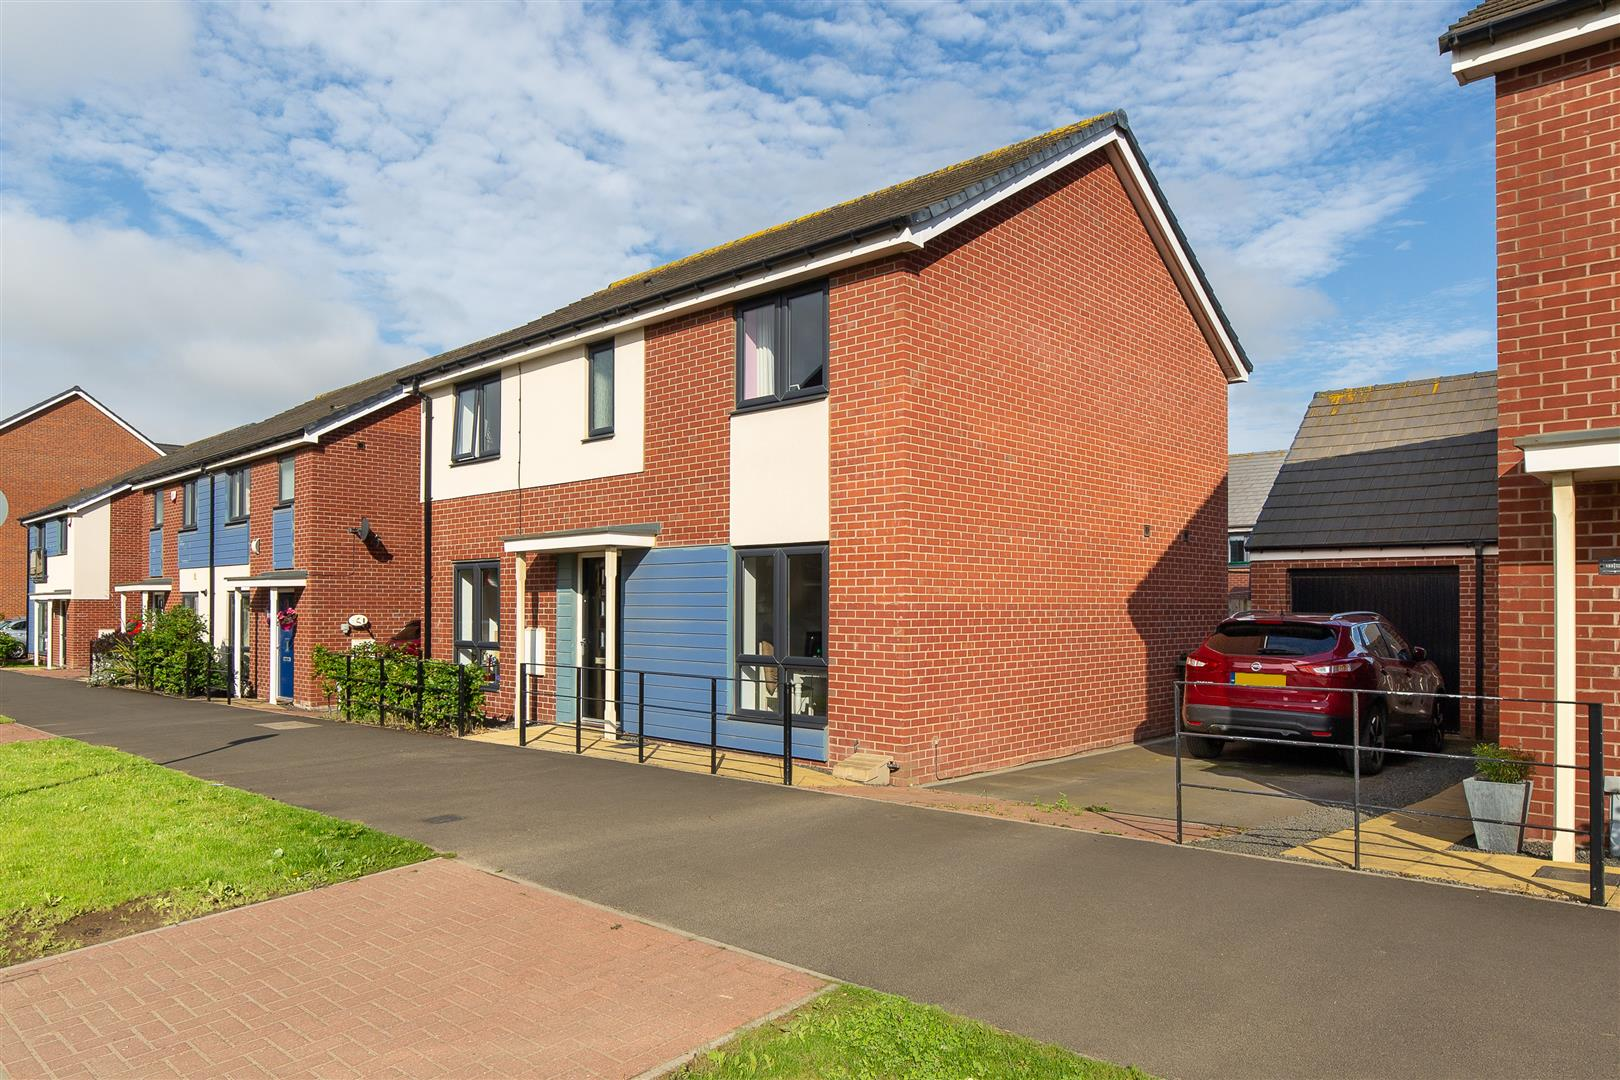 4 bed detached house for sale in Great Park, NE13 9BD - Property Image 1